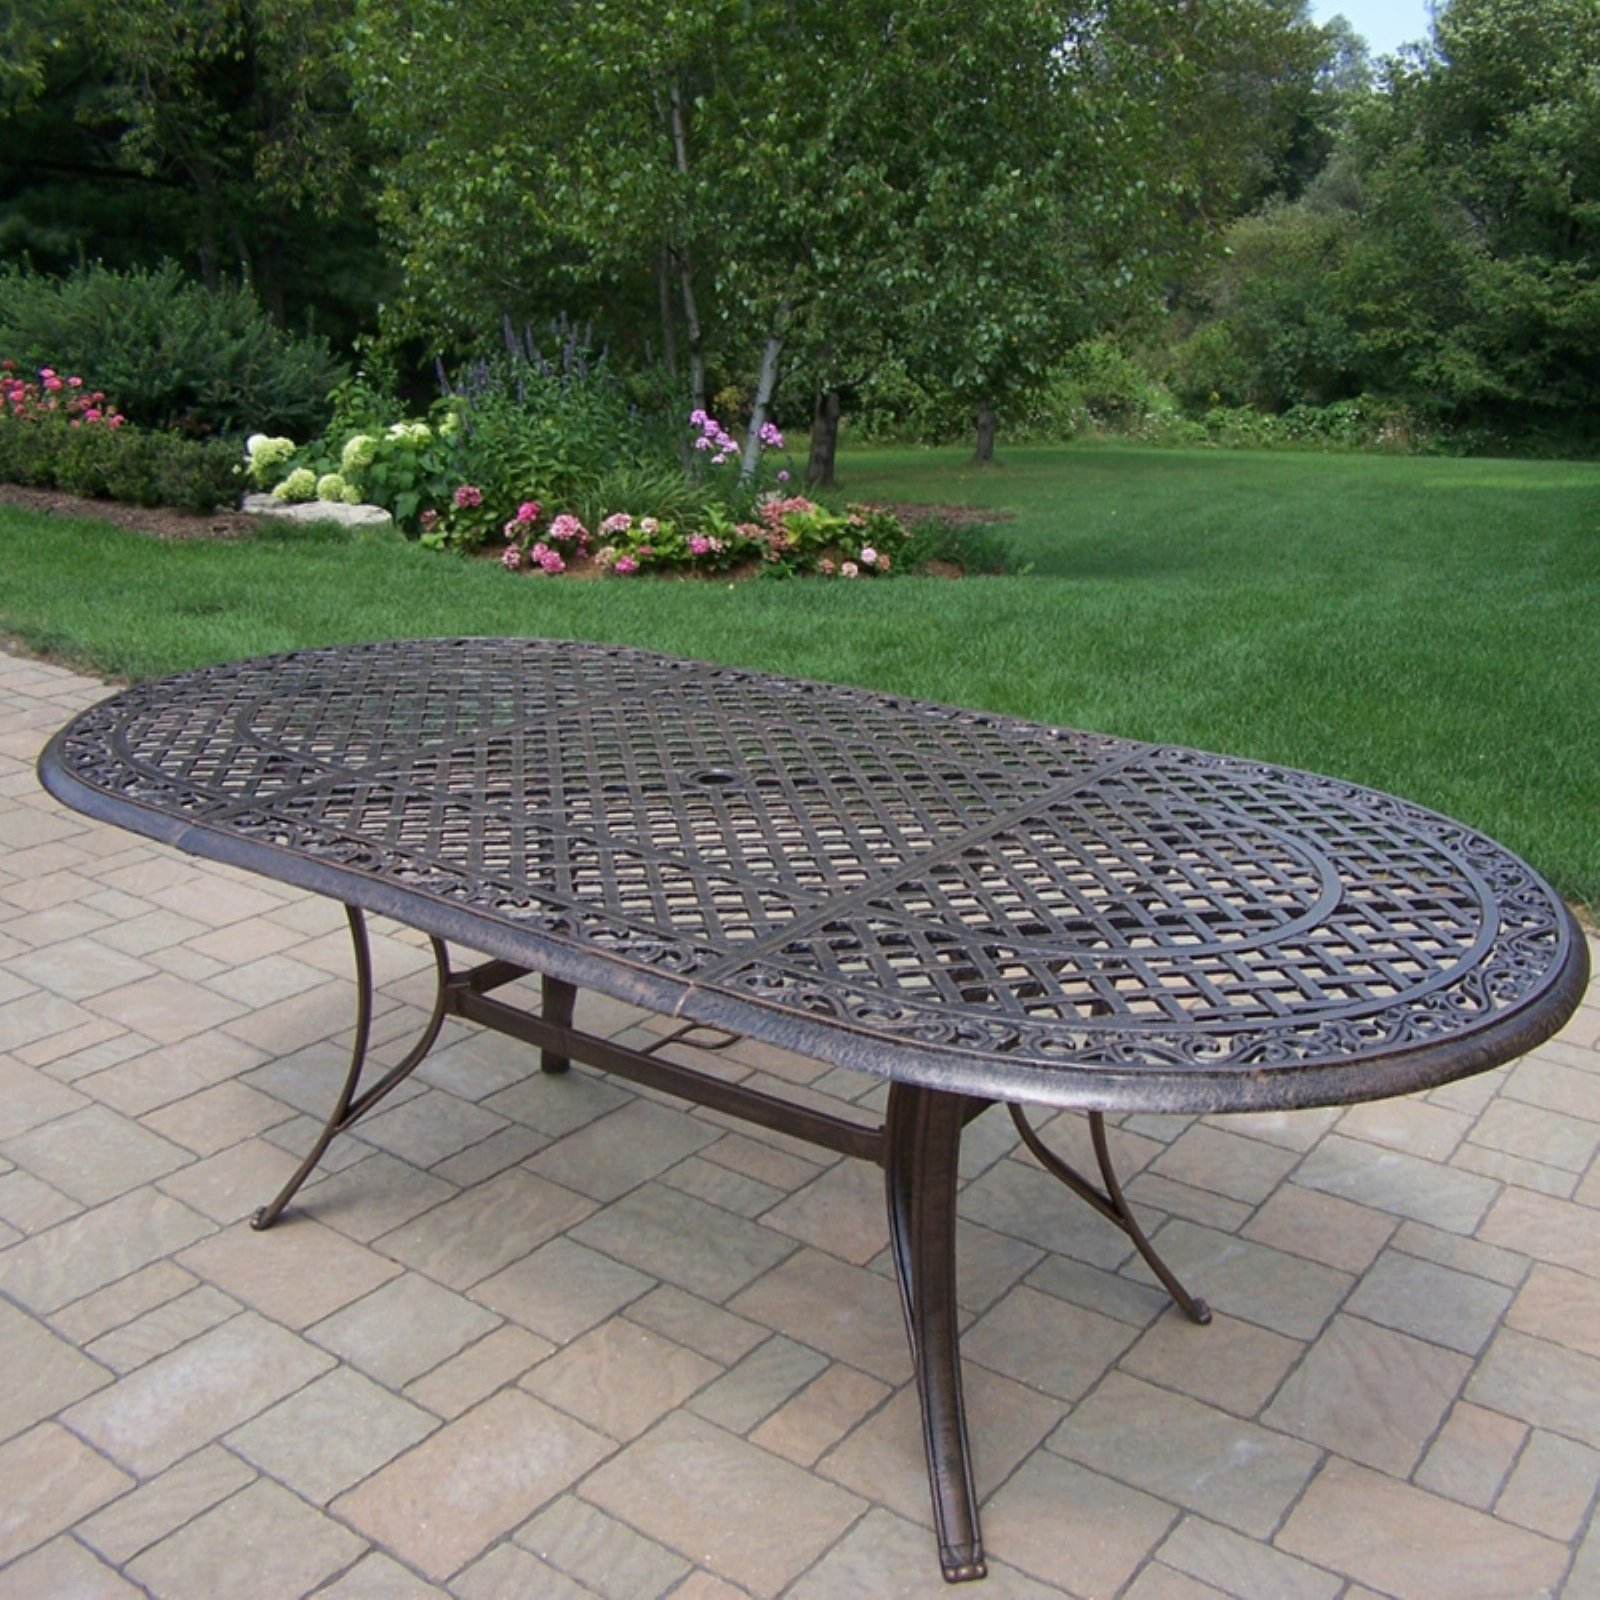 oakland living mississippi cast aluminum 82 x 42 in oval patio dining table